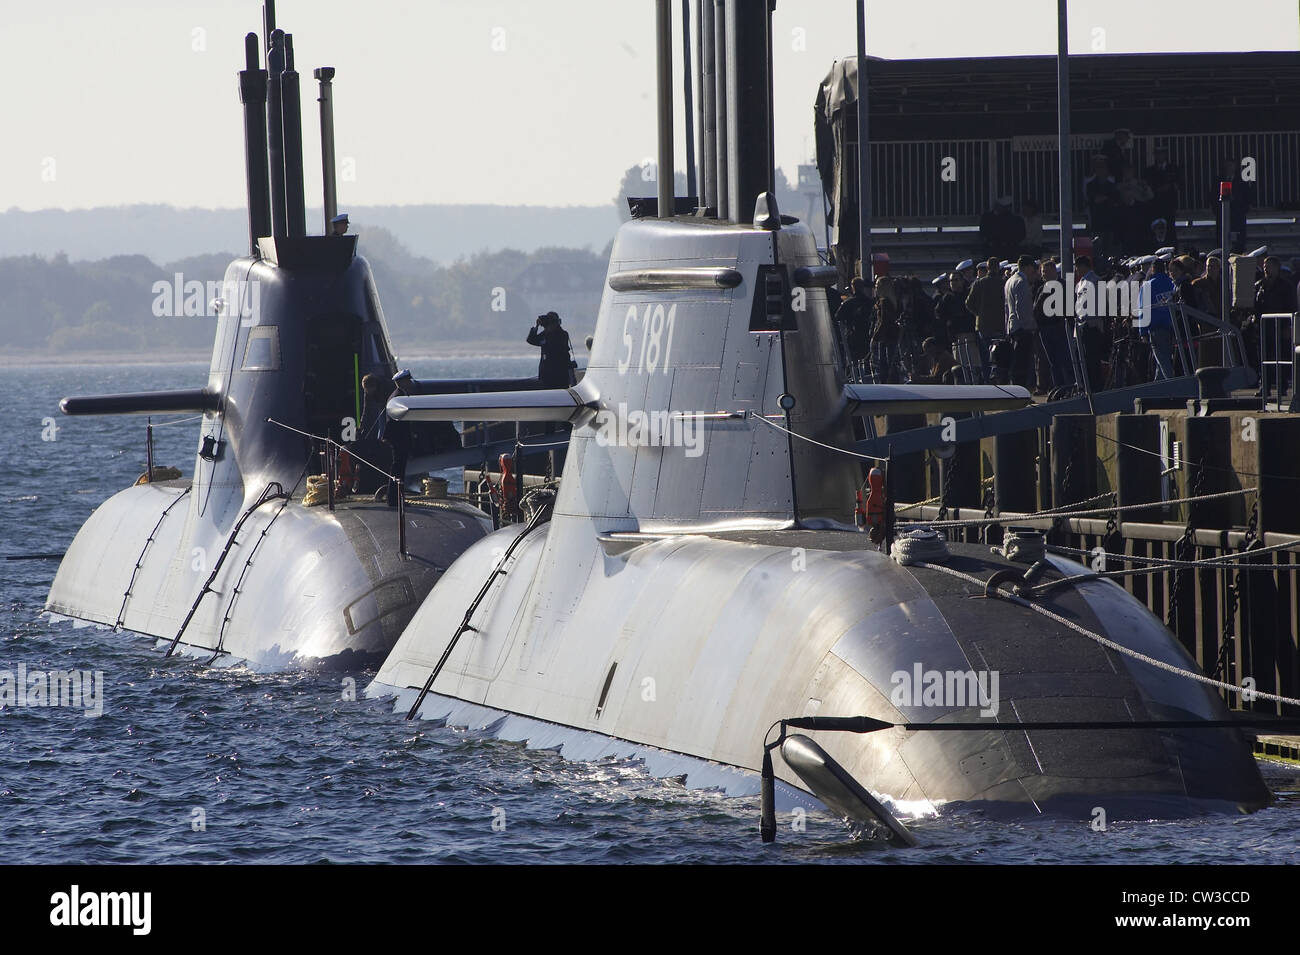 Commissioning of the fuel cell submarines U 31 and U 32 - Stock Image